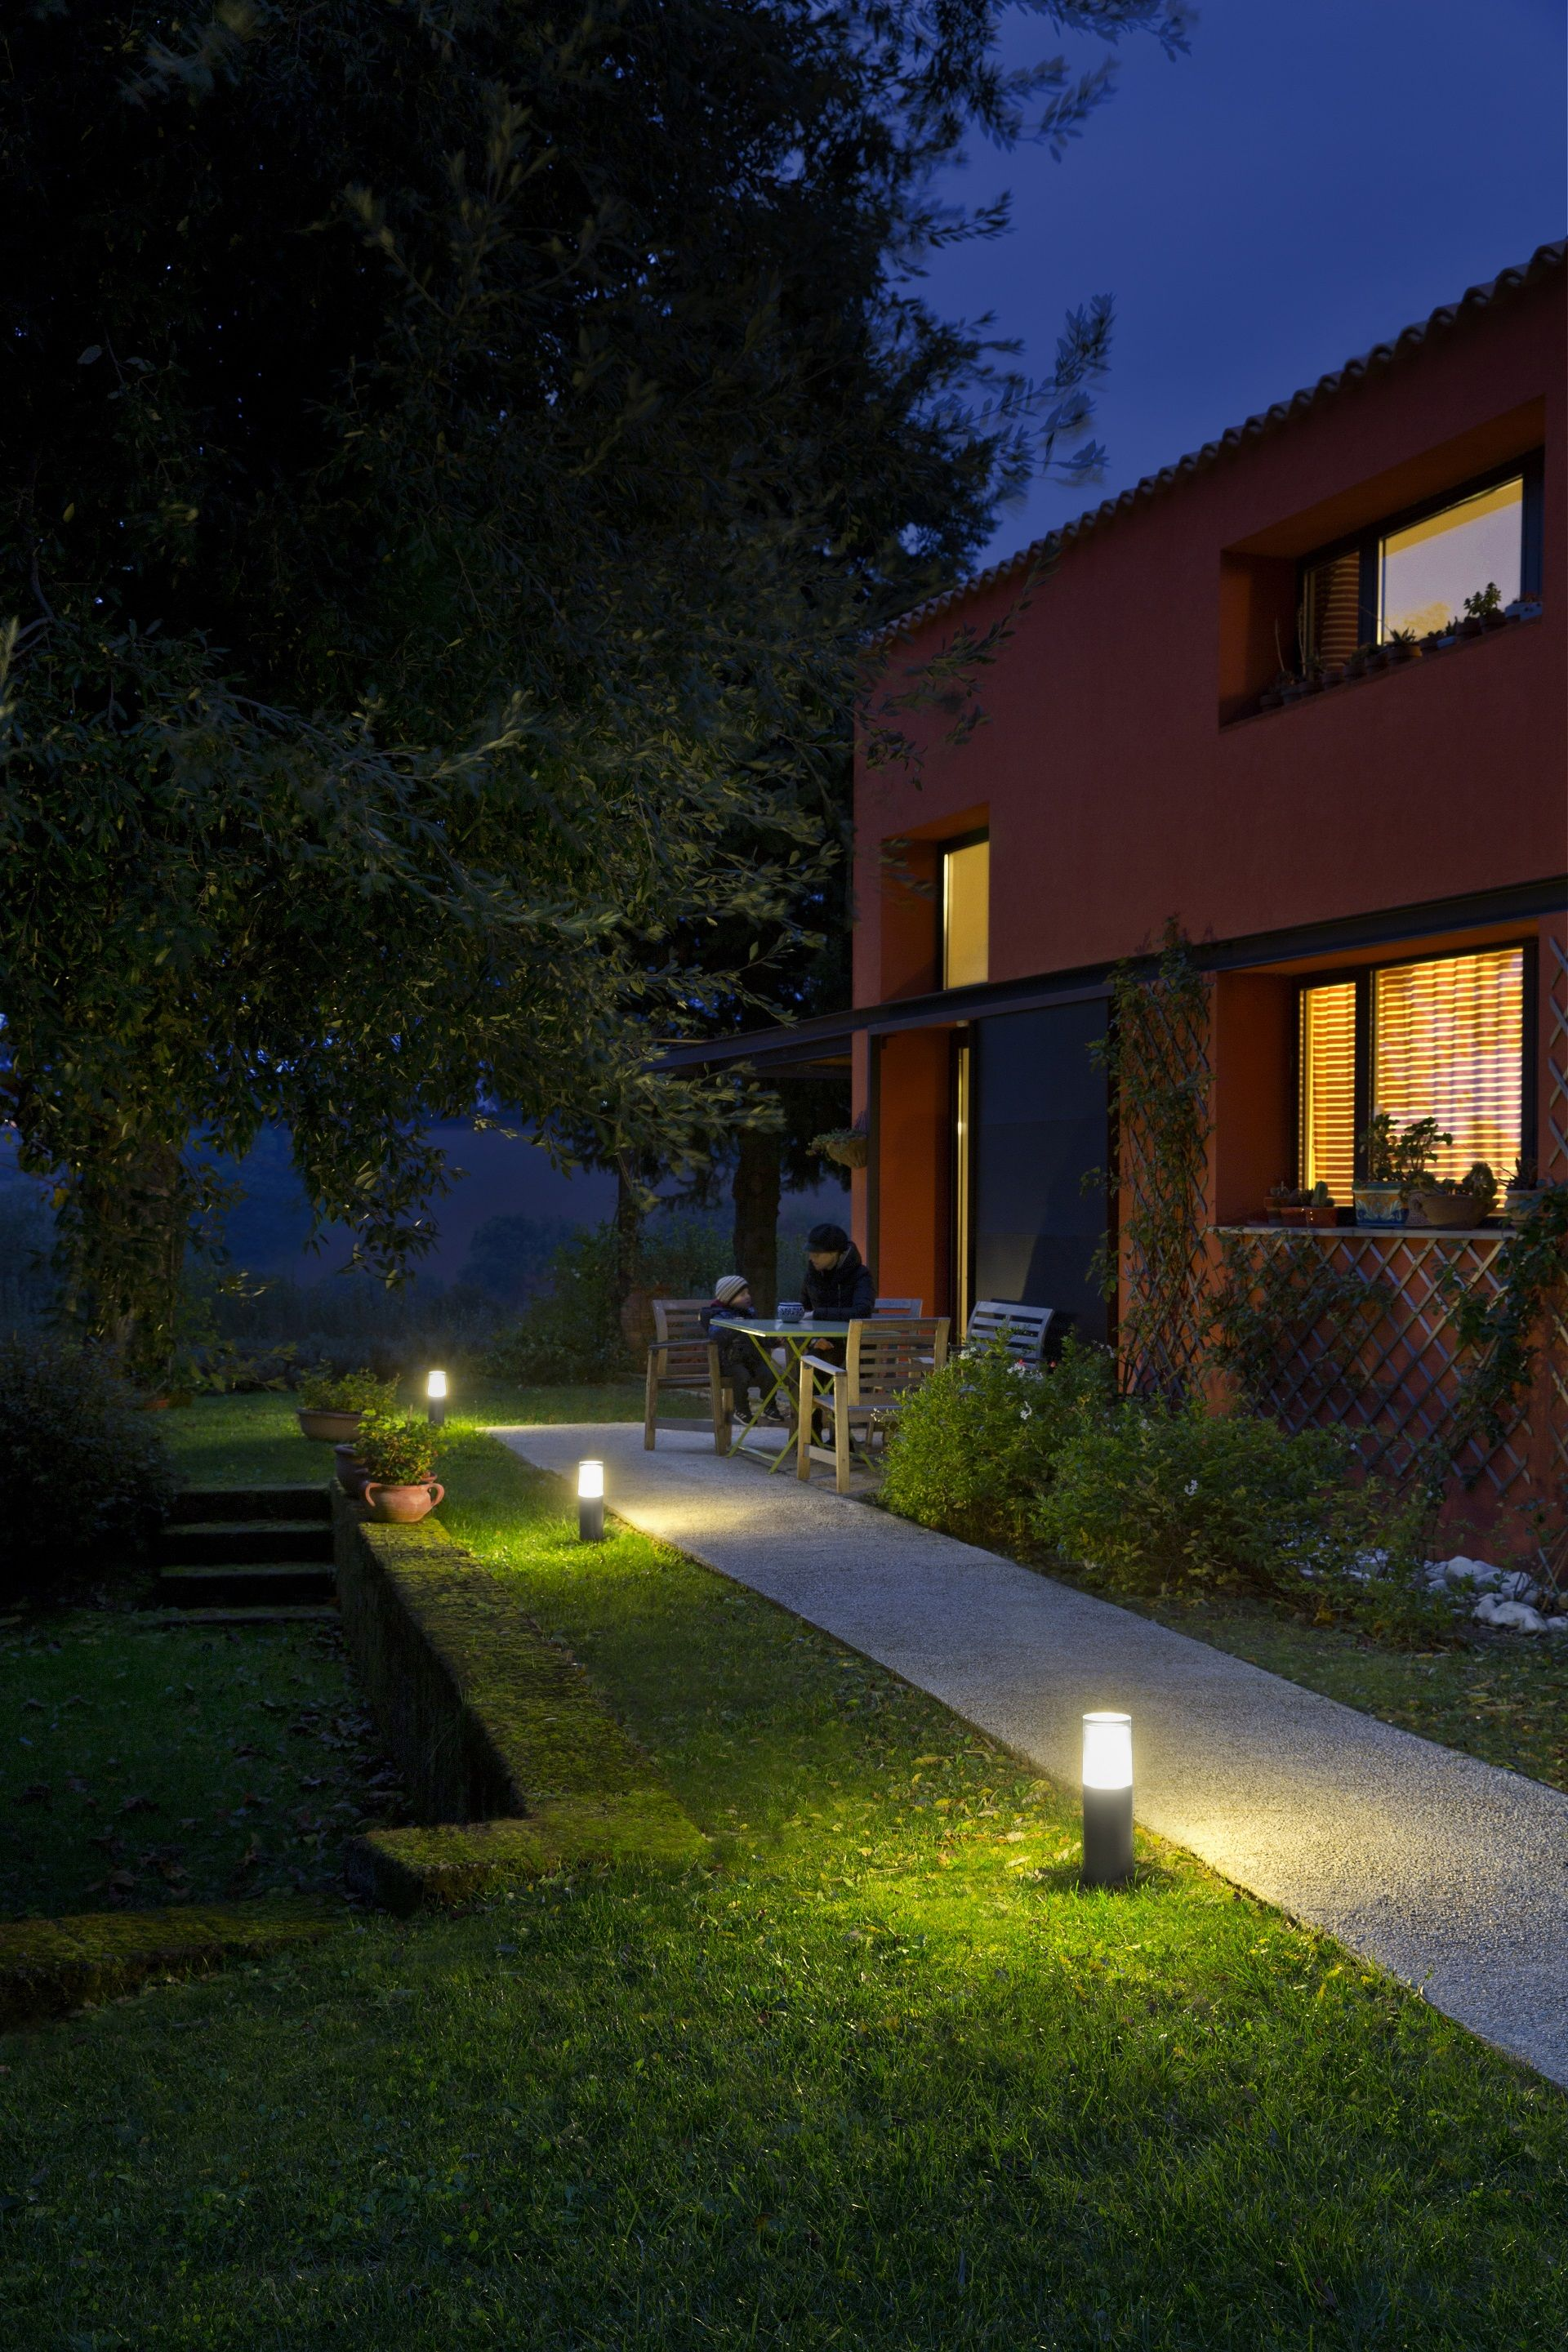 Premium quality led lights httpgel usa lighting nothing has refreshed the look of your home like new exterior lights at lamps plus we provide complete exterior lighting aloadofball Choice Image